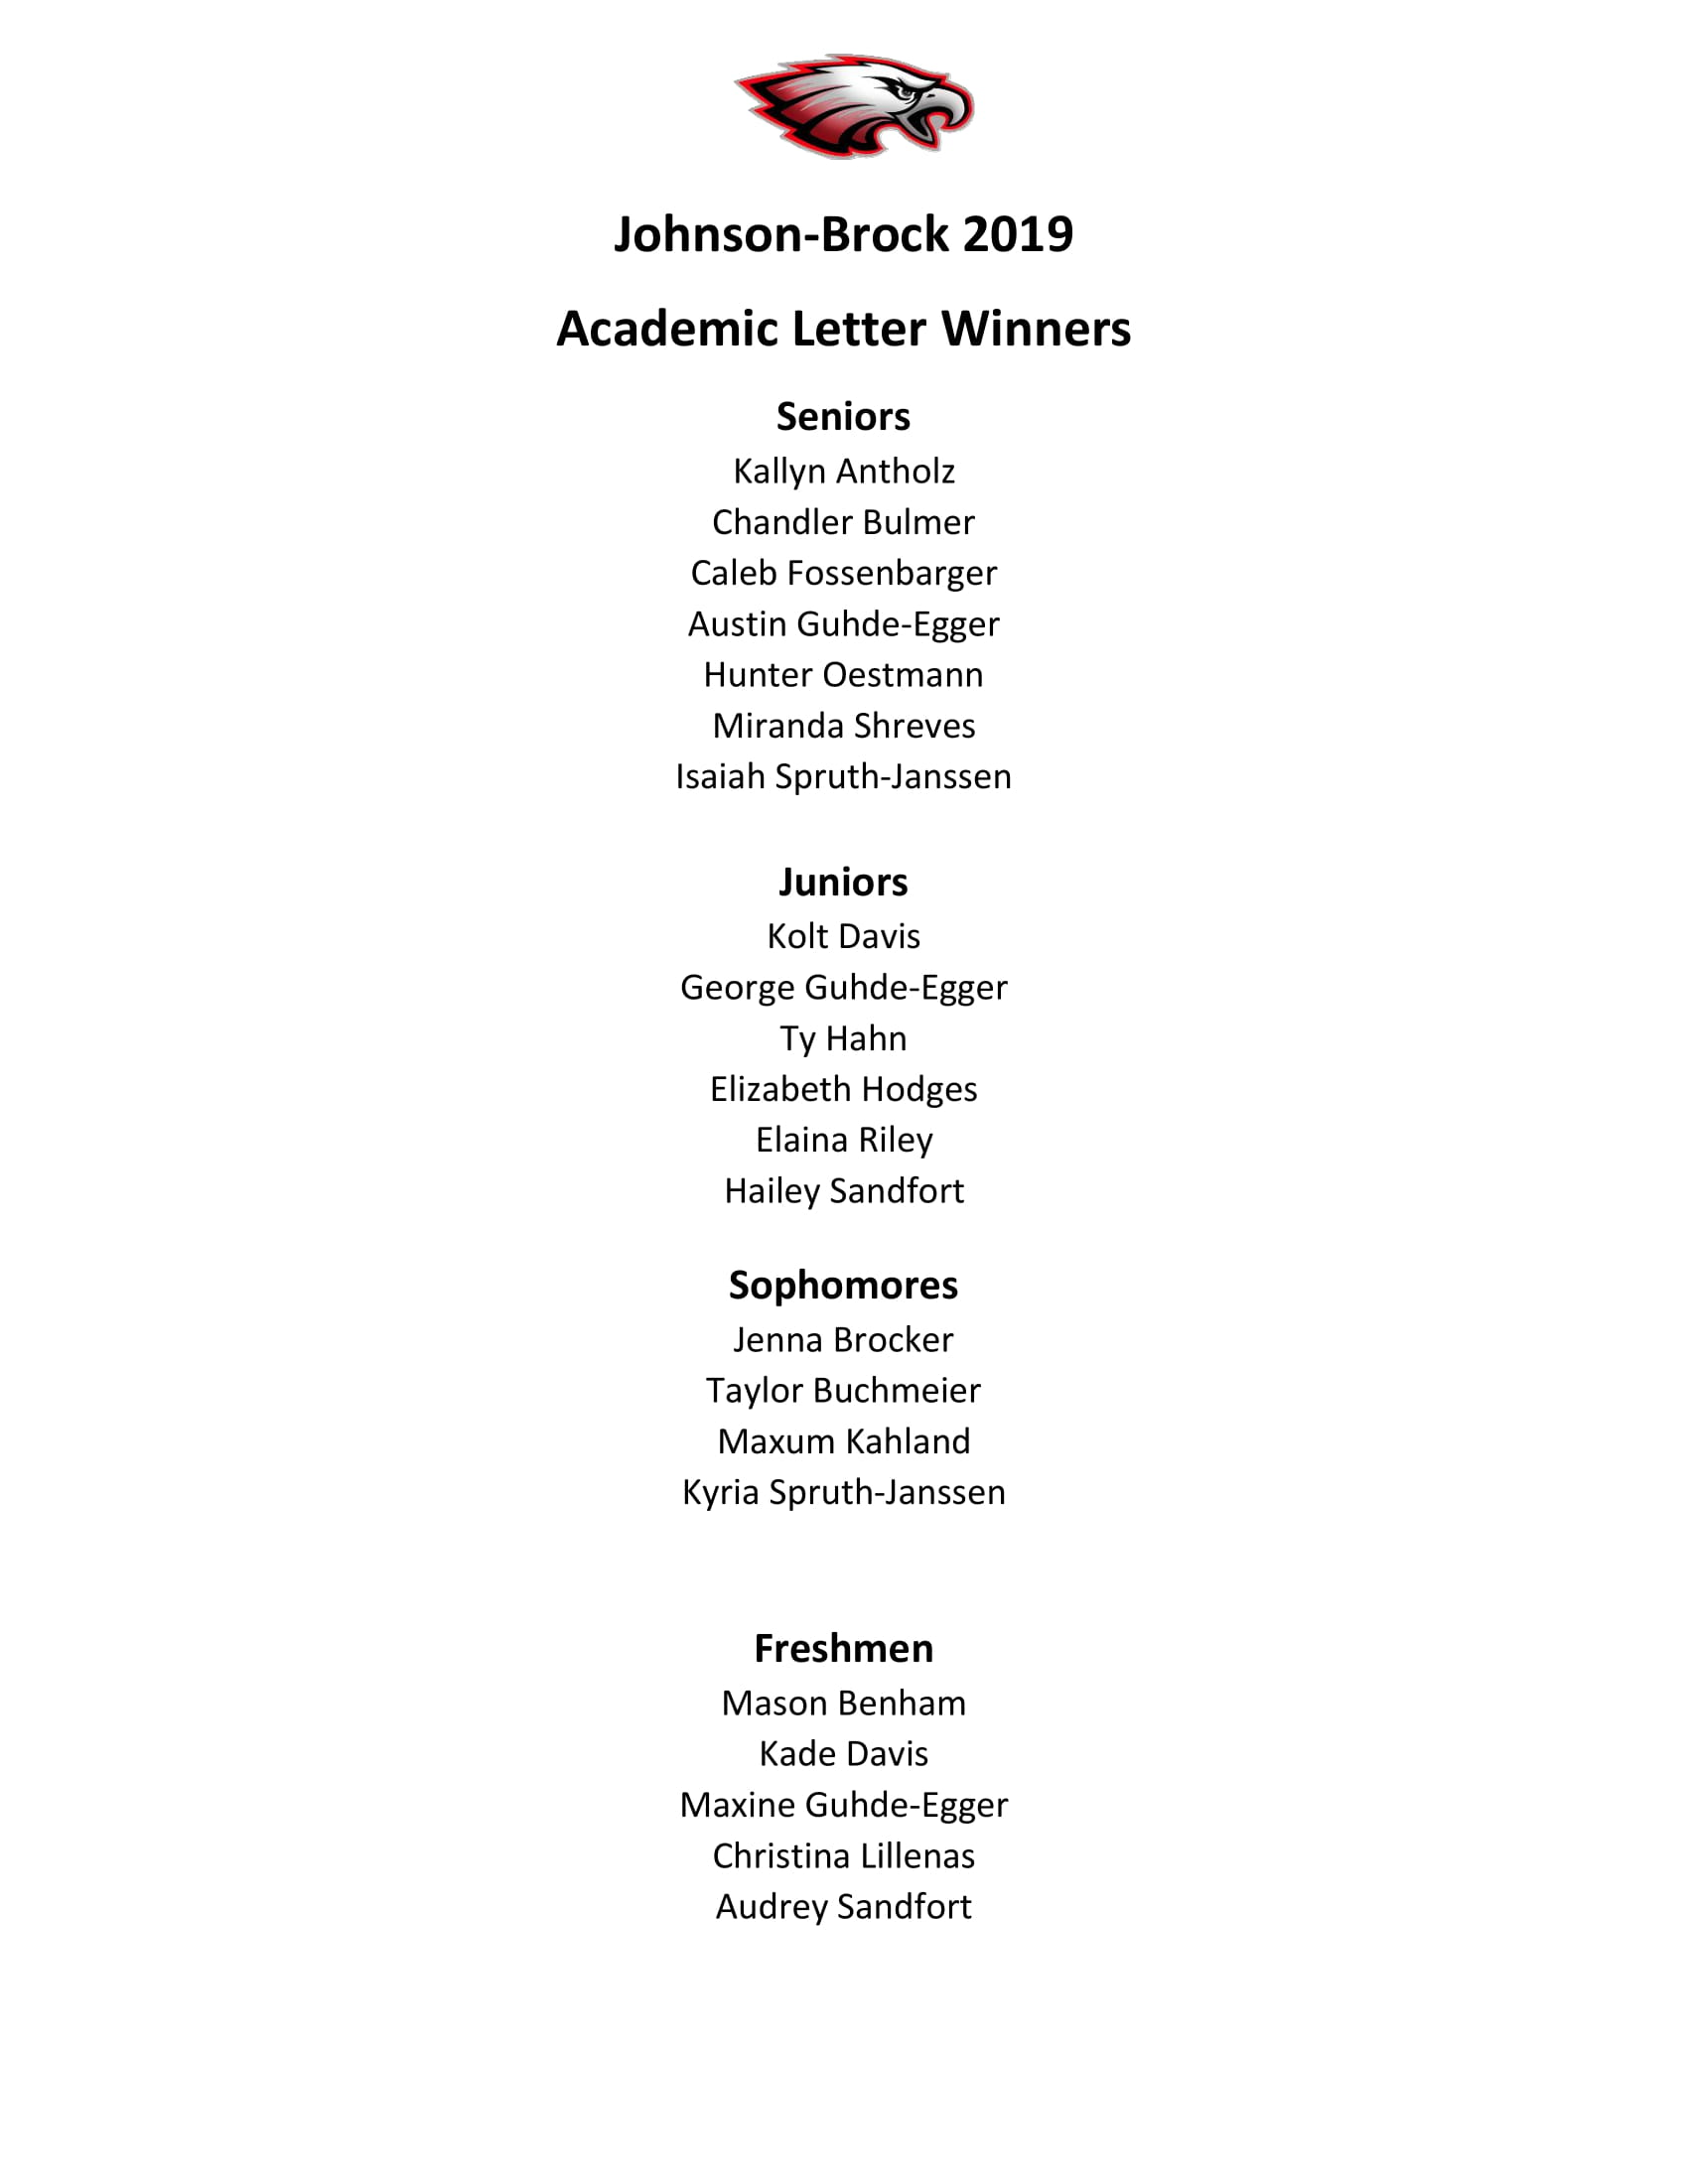 Academic Letter Winners - 2019